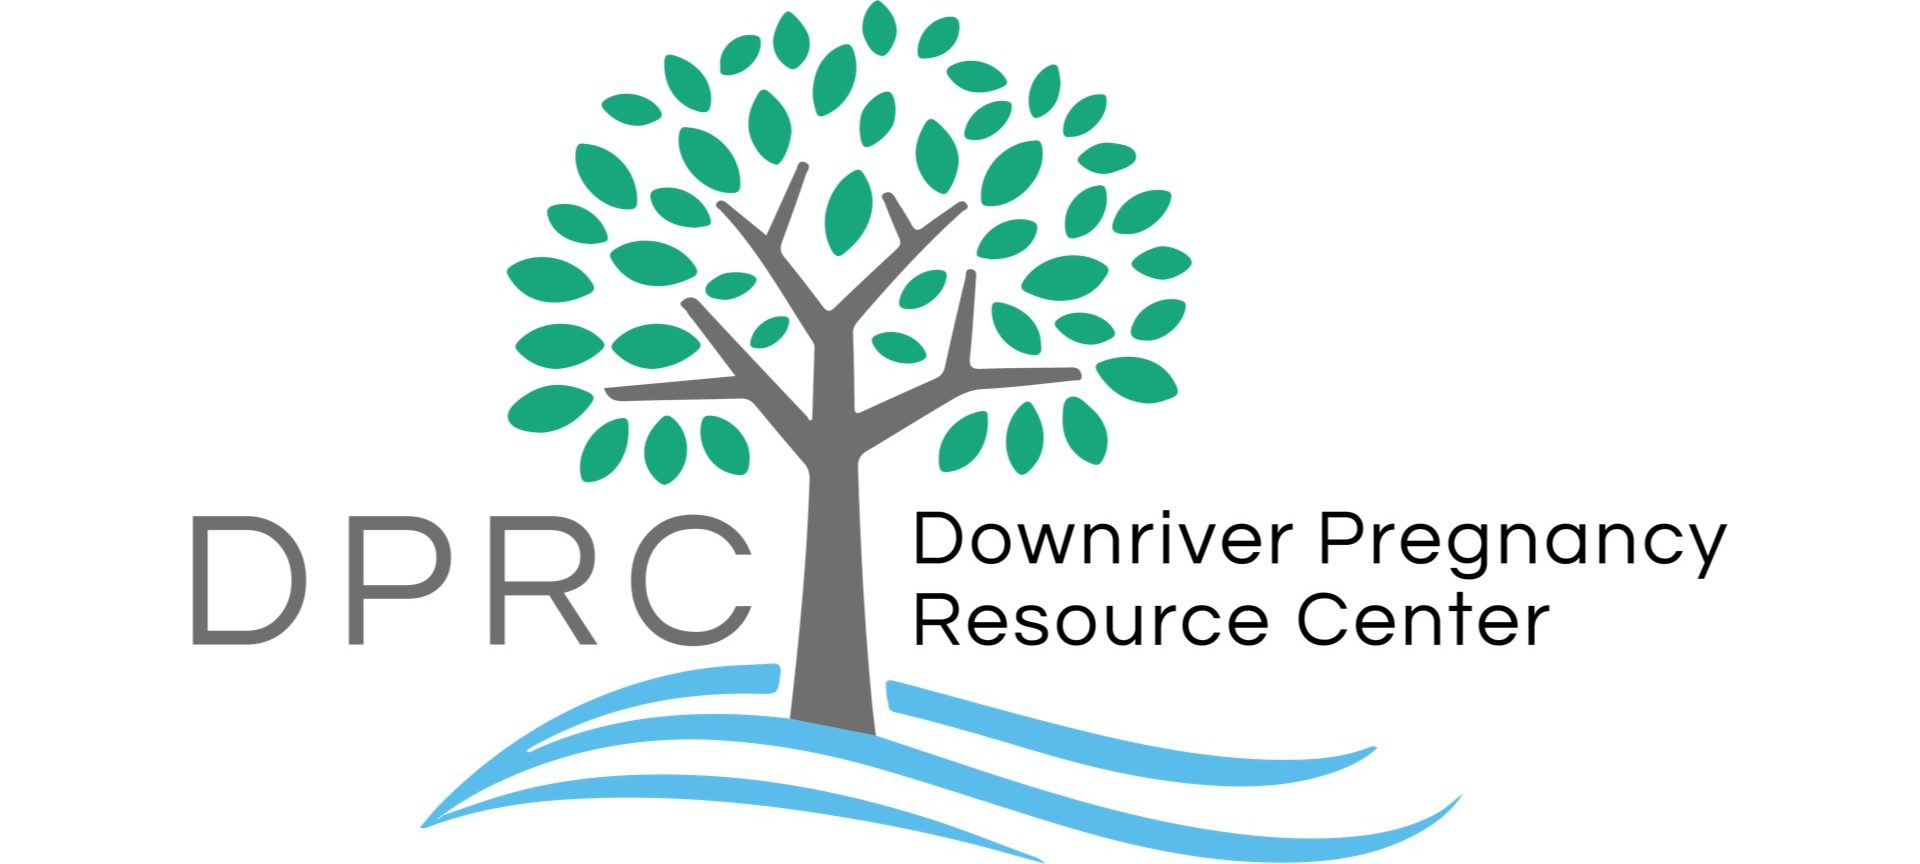 Downriver Pregnancy Resource Center